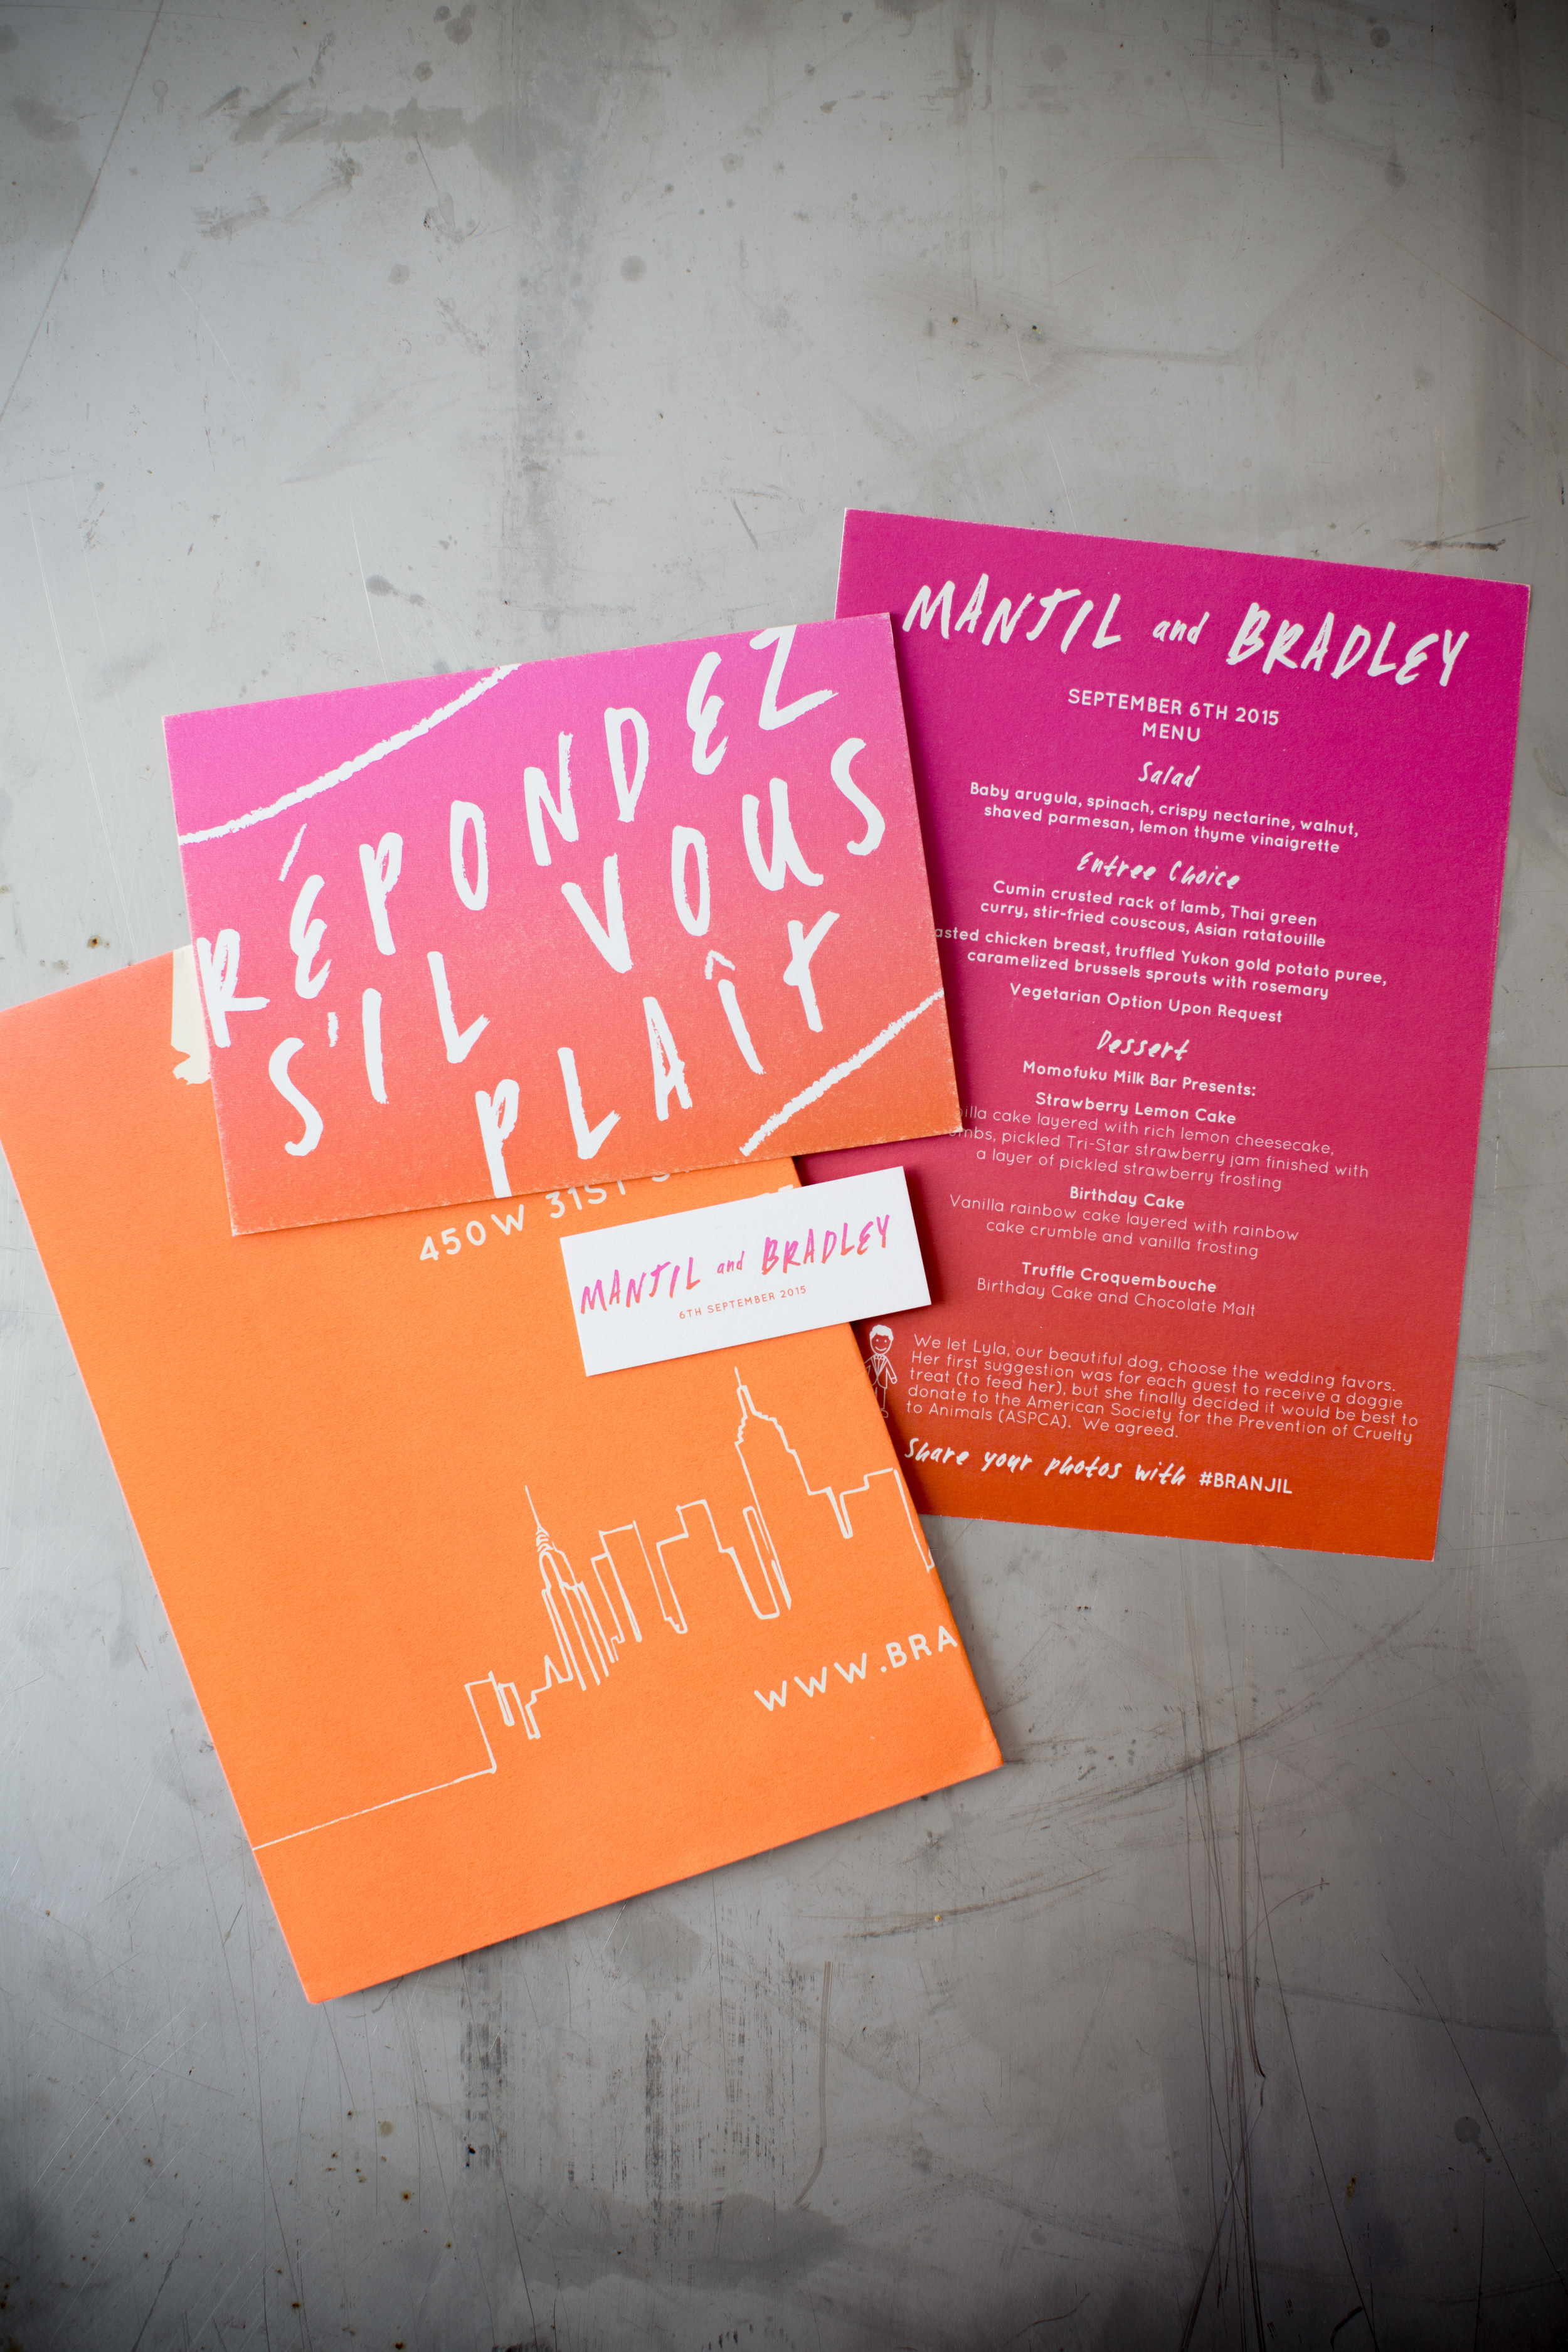 We wanted to give Manjil and Brad edgy designs that suited them as a modern male couple; colour was also hugely important and so  we created a range of items including invitations, RSVPs, menus and signage incorporating a vibrant hot pink to orange ombre.